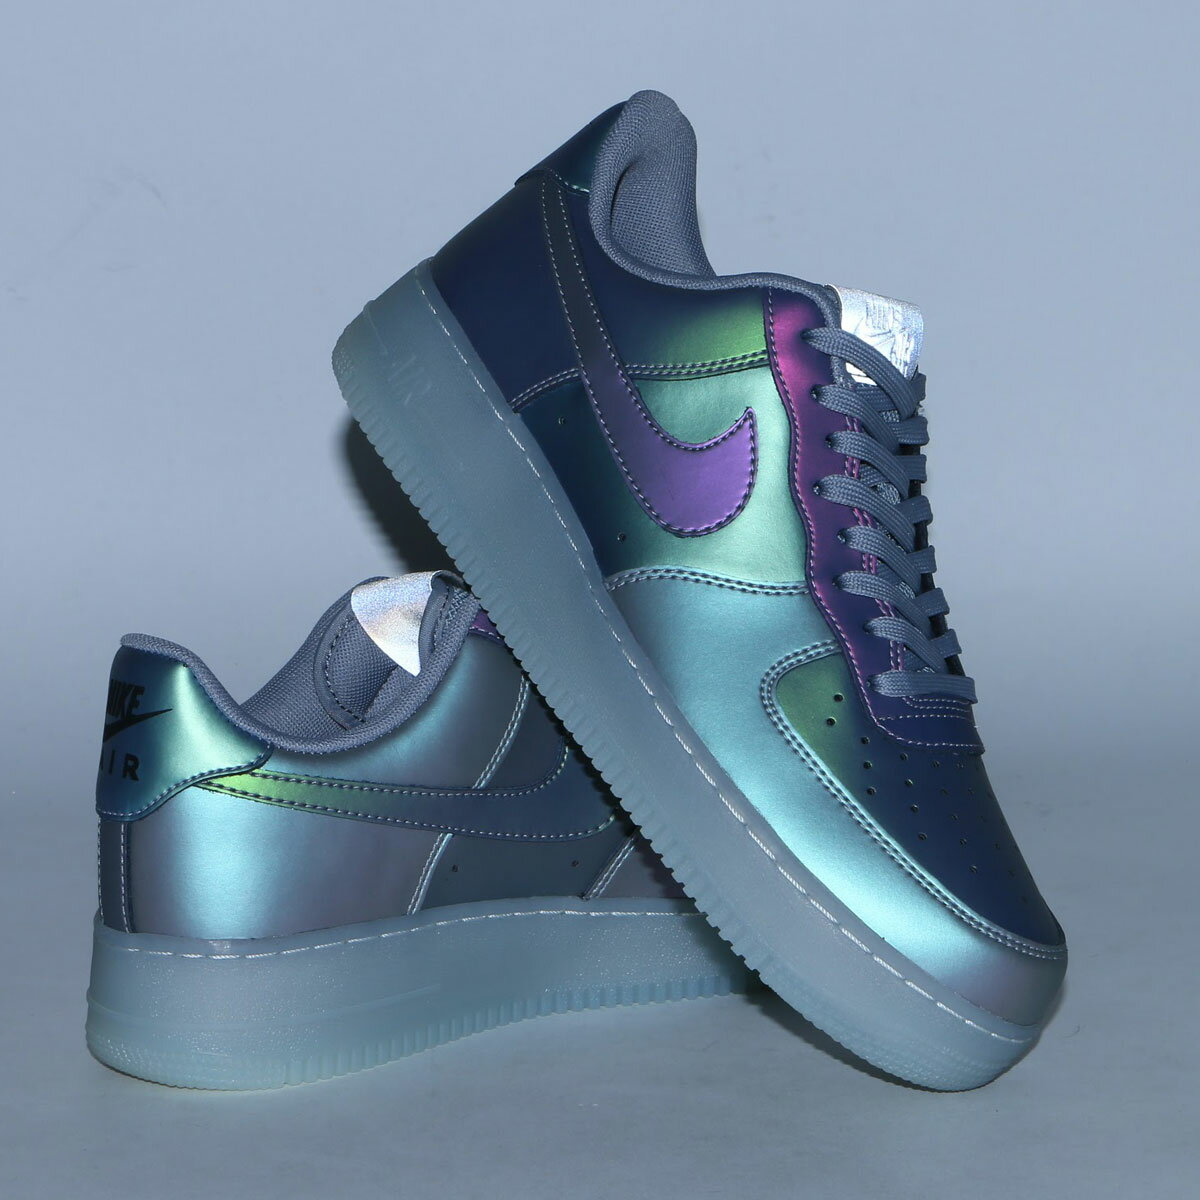 NIKE AIR FORCE 1 '07 LV8(ナイキ エア フォース 1 07 LV8)ANTHRACITE/ANTHRACITE-STEALTH17SU-S